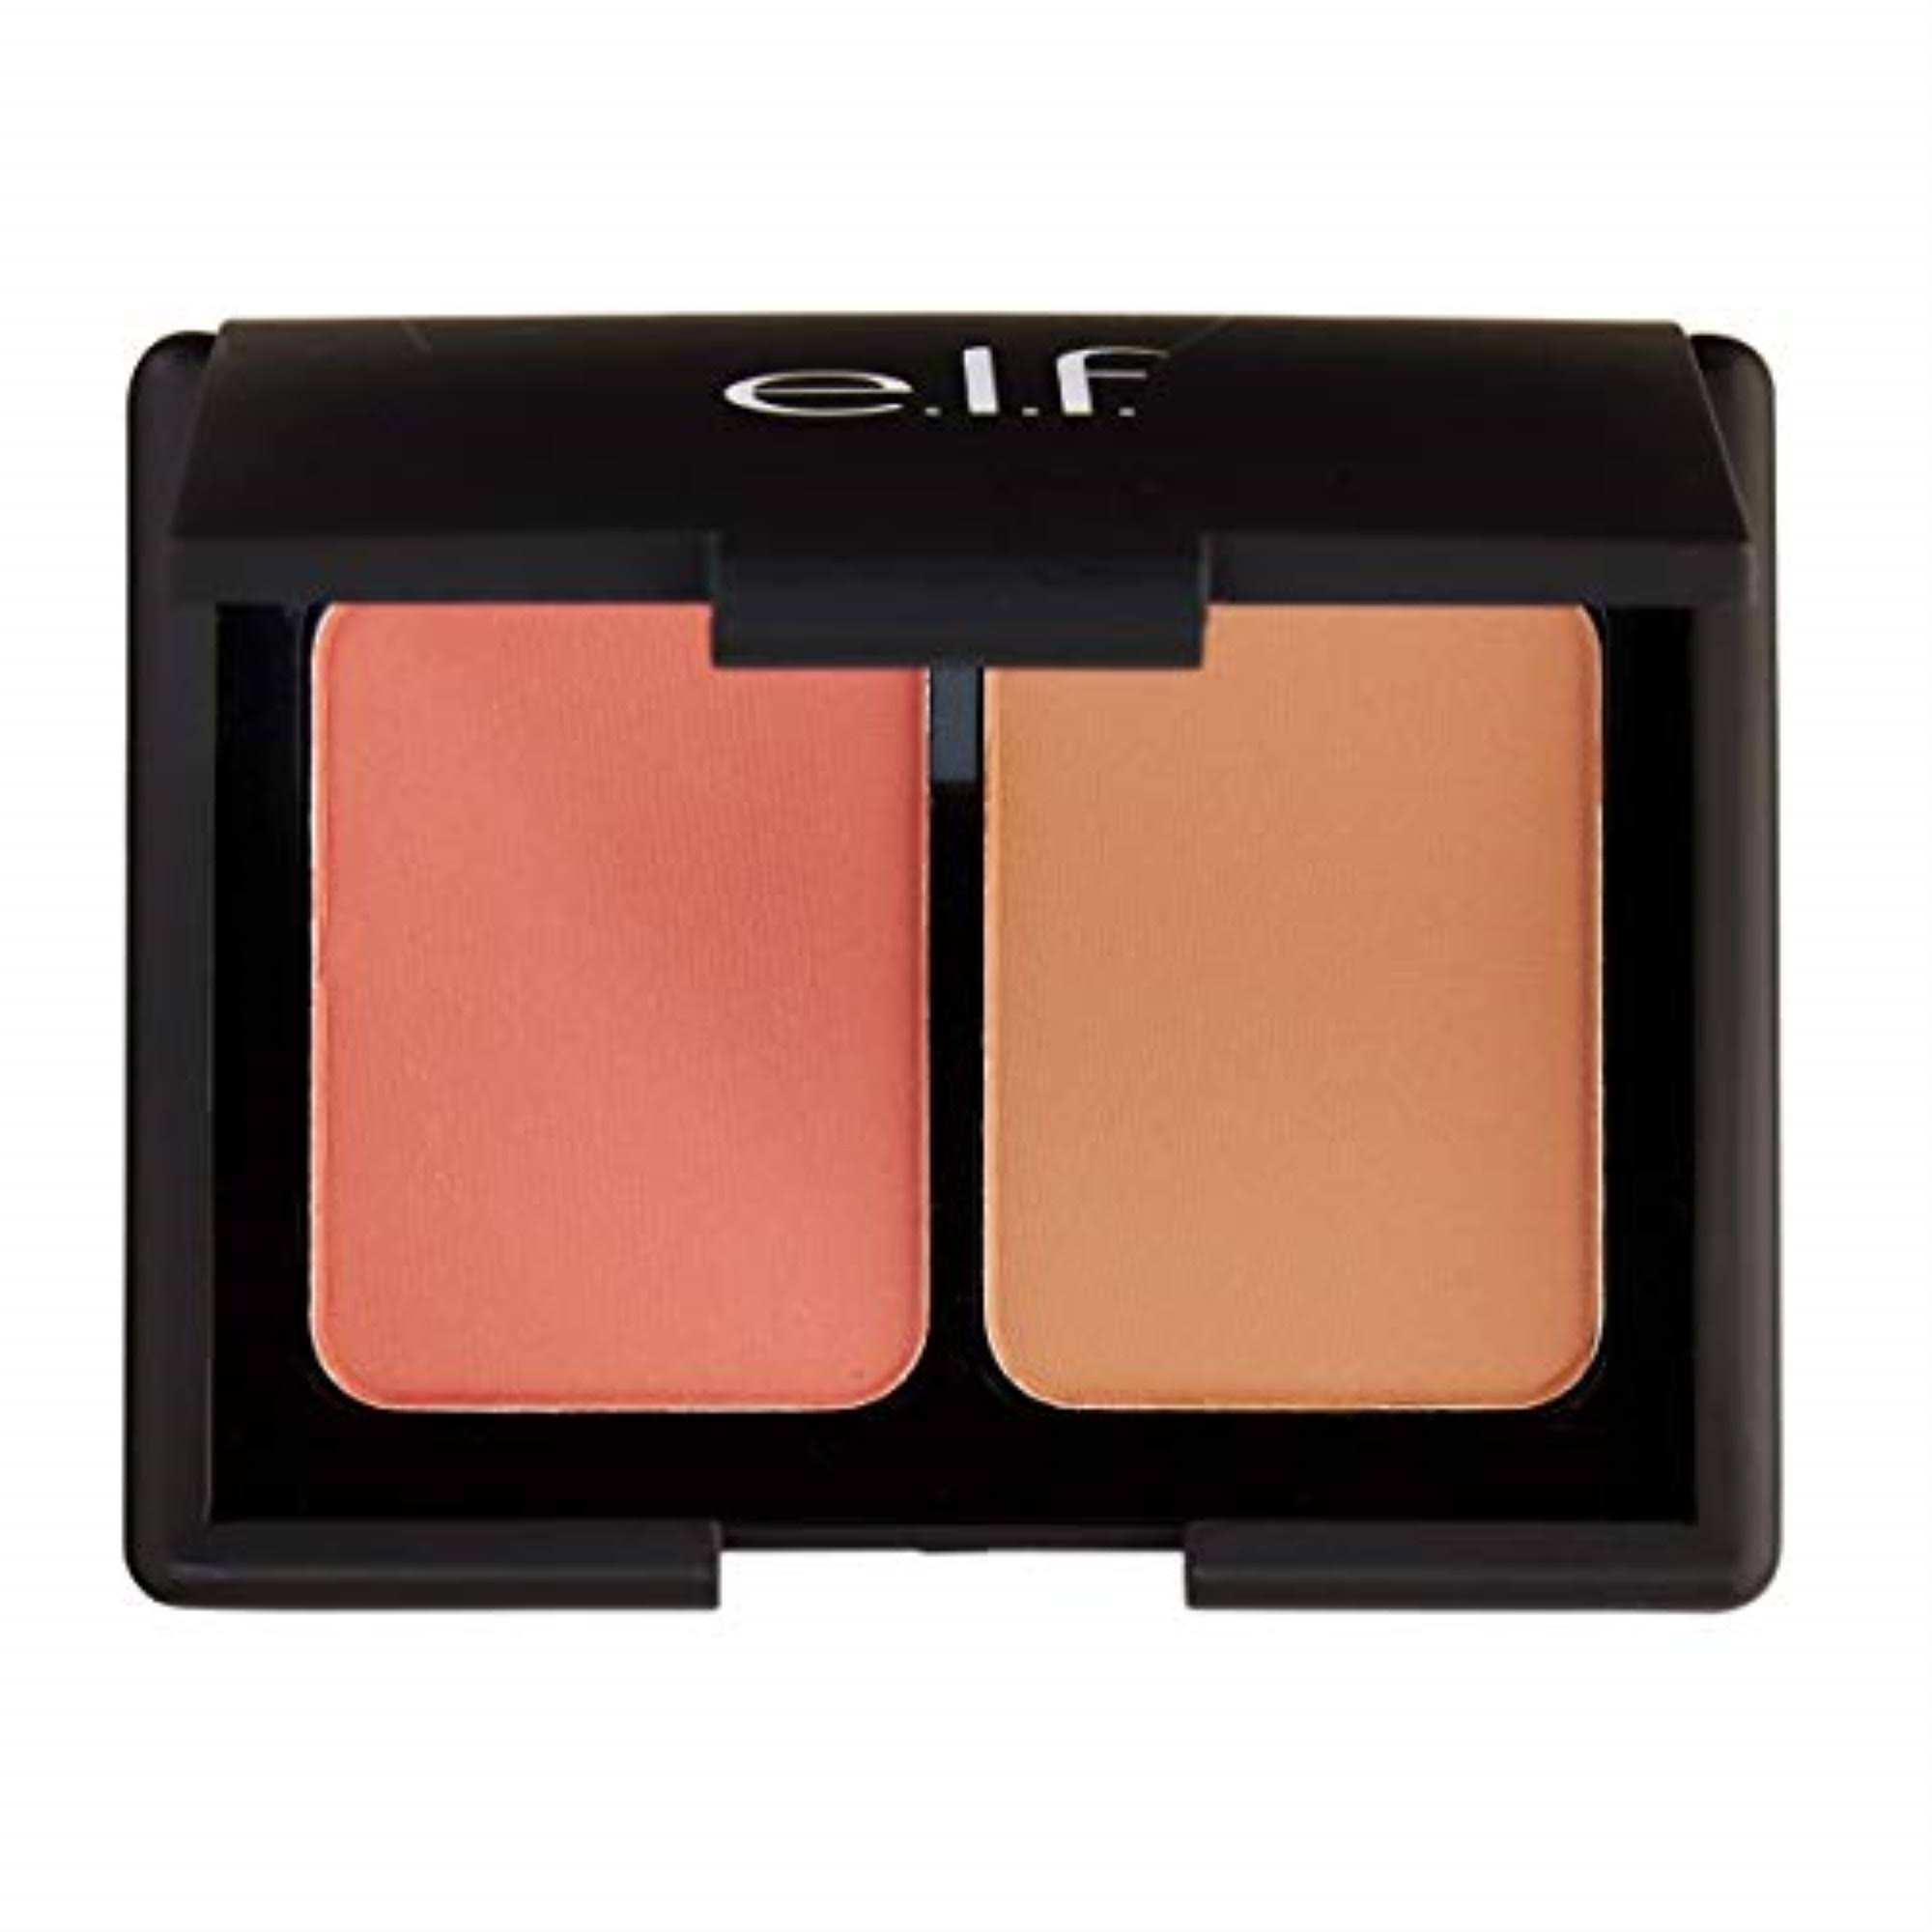 Elf Contouring Blush and Bronzing Powder - Fiji Matte